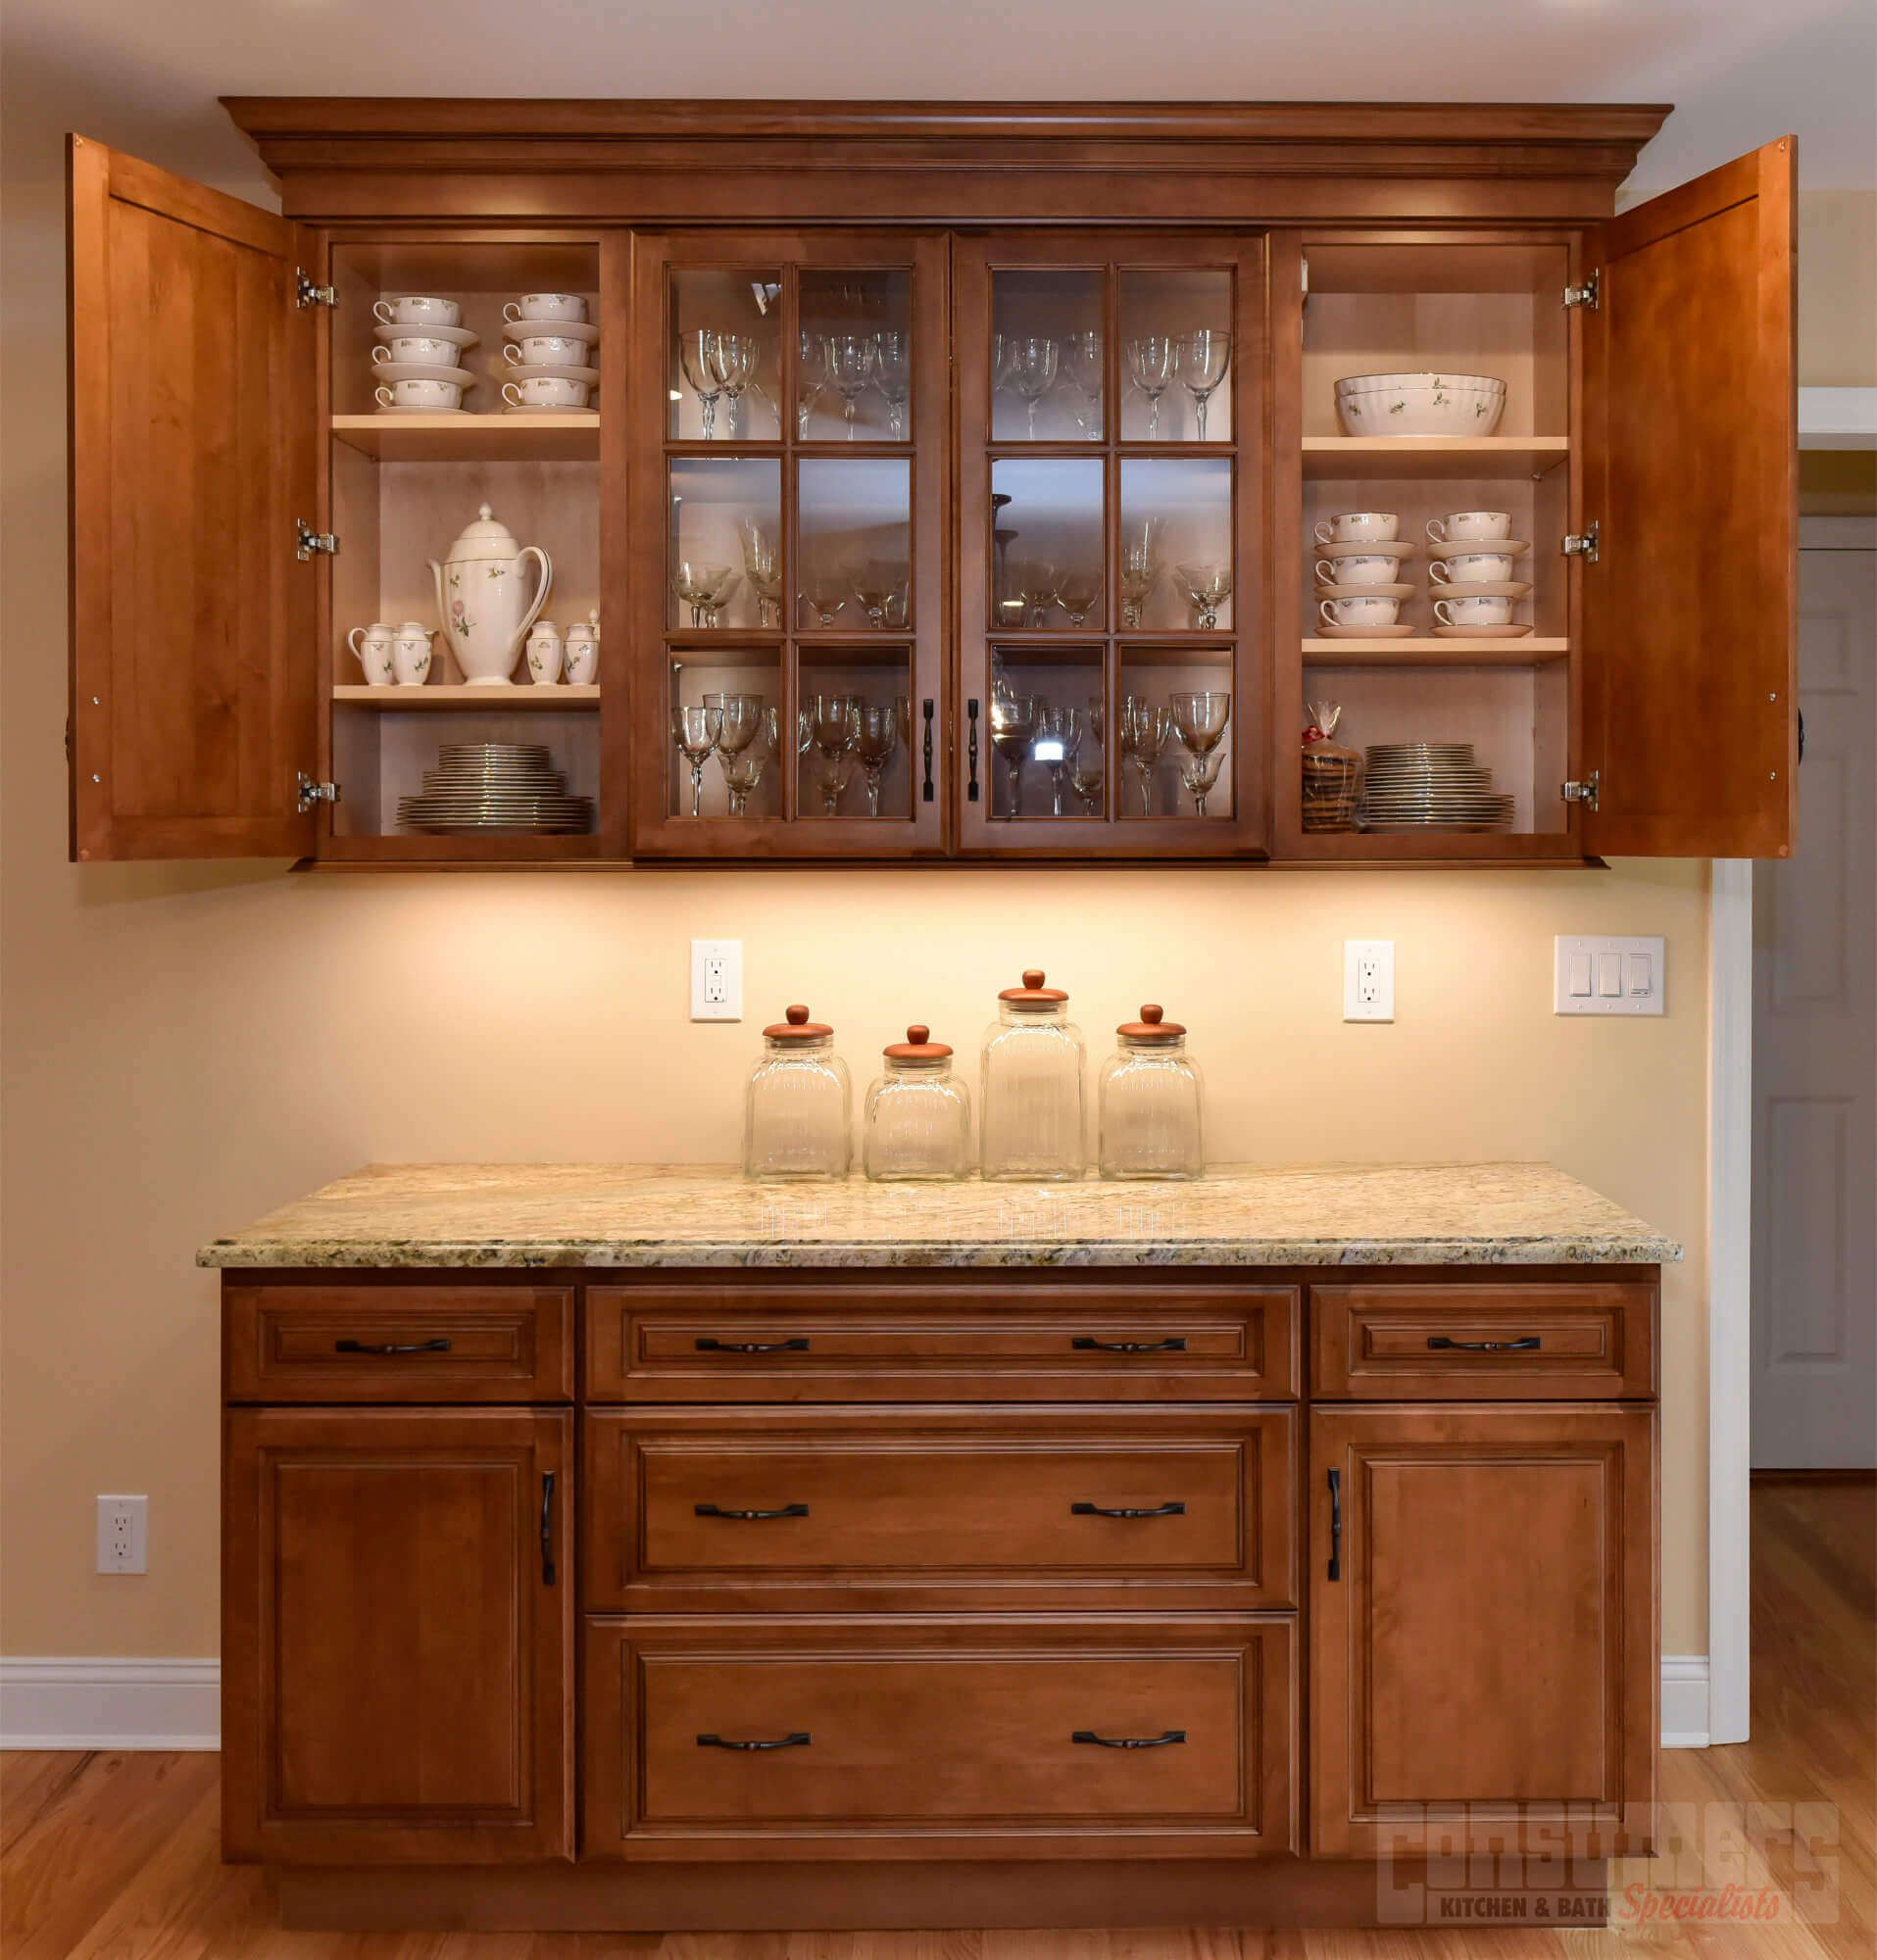 Consumers Kitchen Cabinets: Pin By Consumers Kitchens & Baths On East Northport